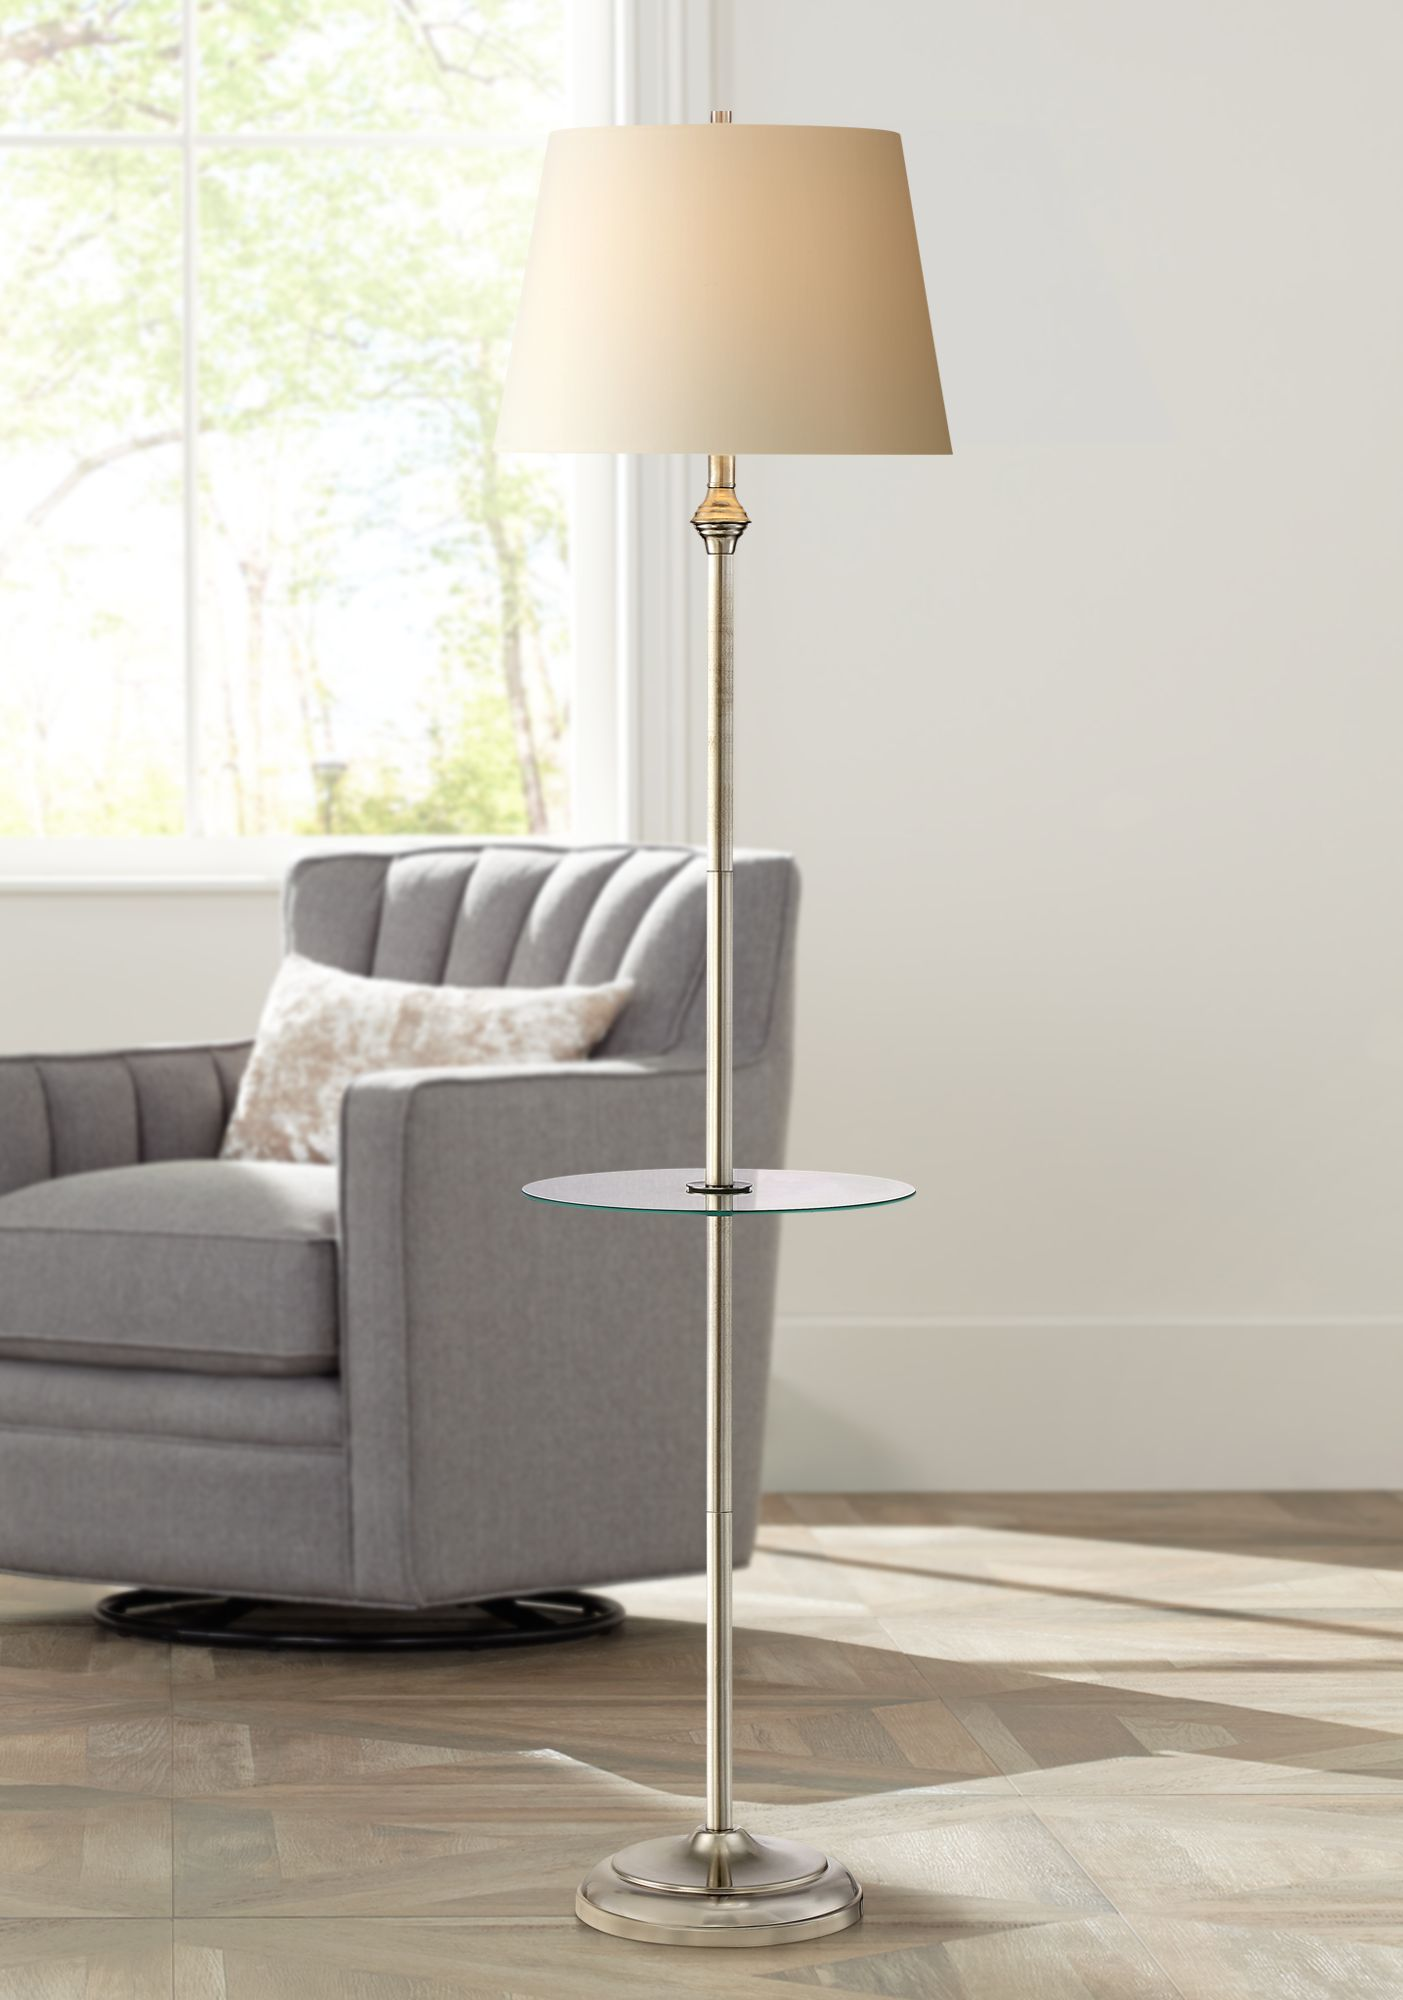 High Quality Dayton Satin Nickel Floor Lamp With Glass Tray Table